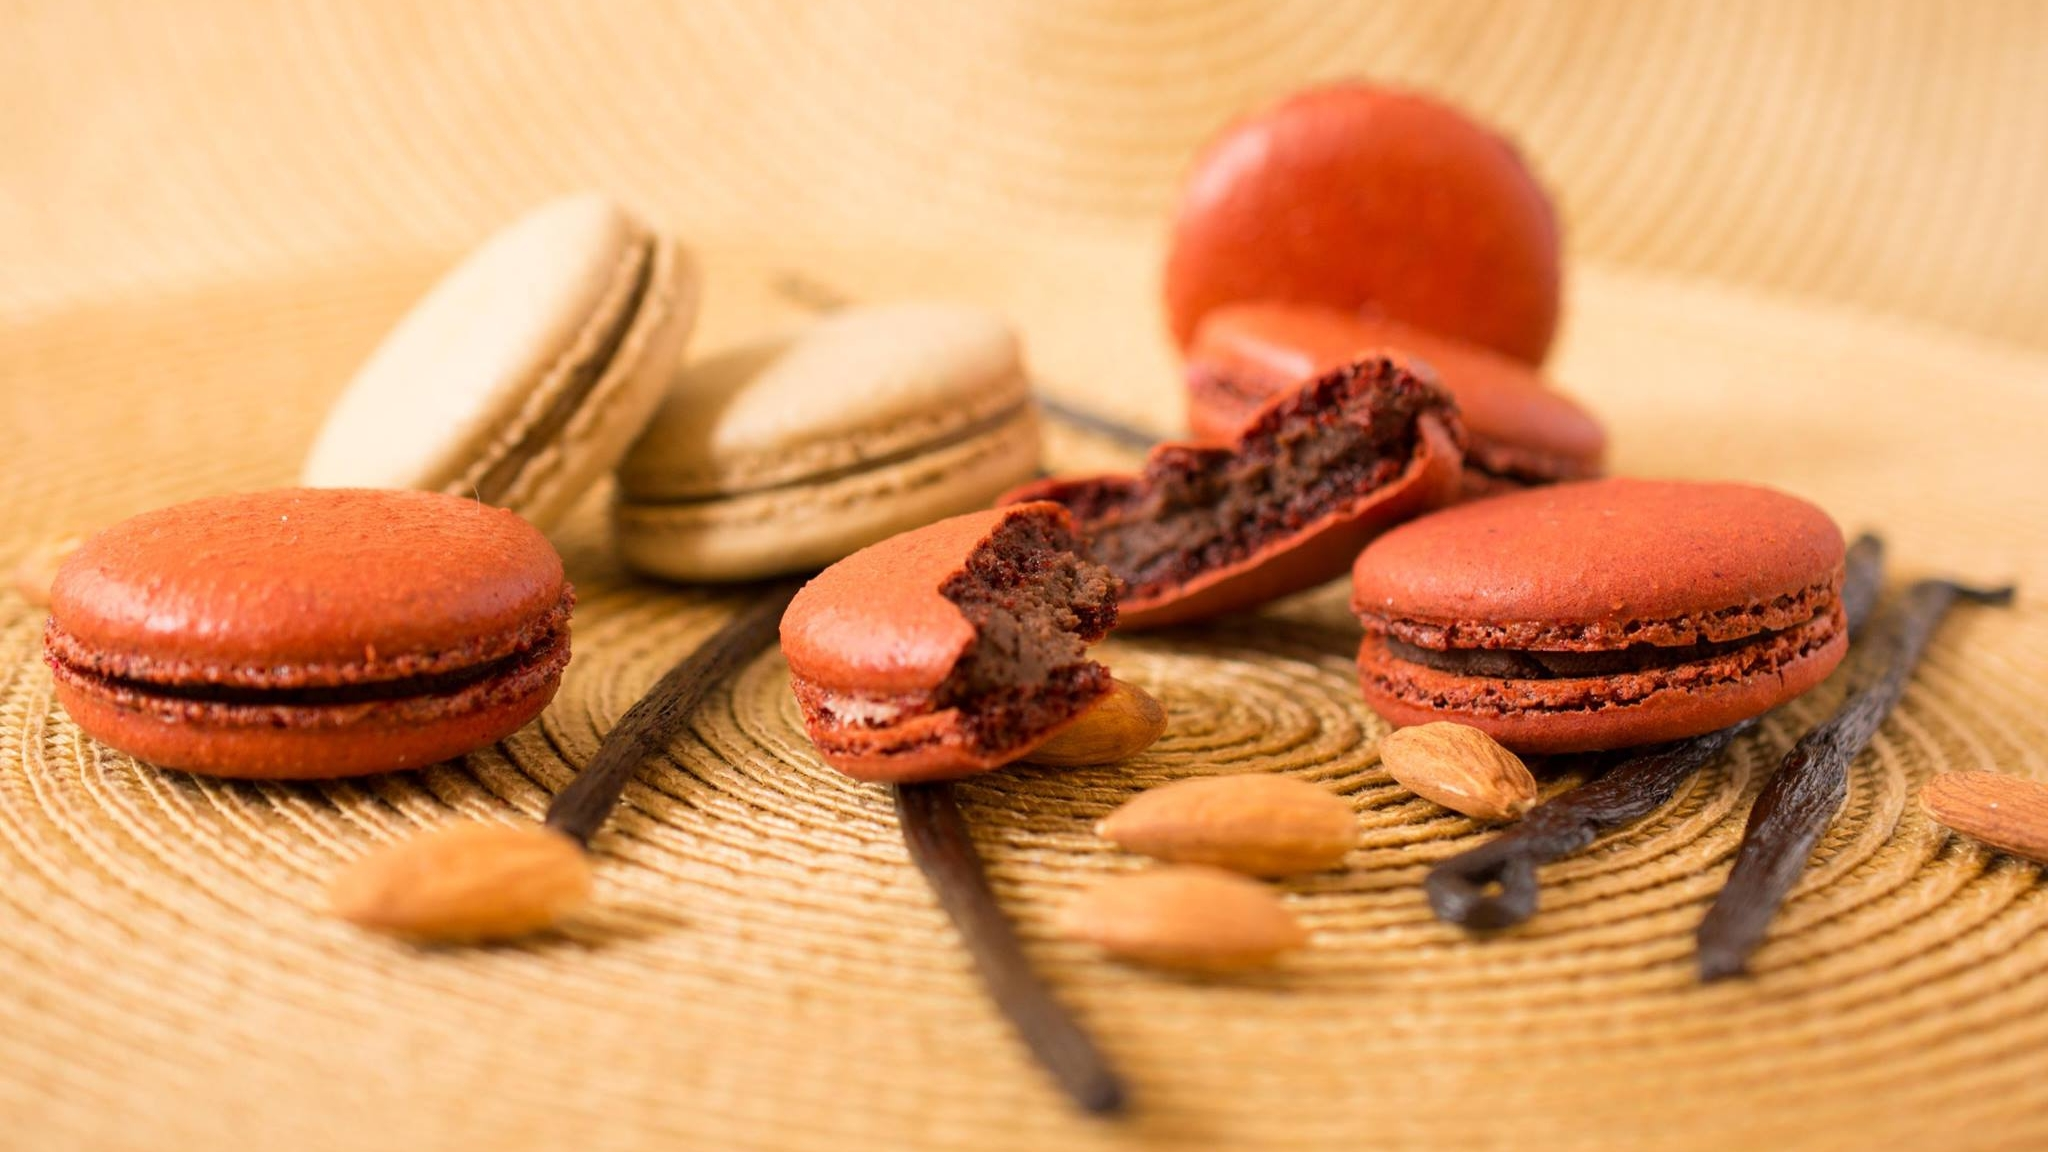 Chef Ione Cavalli New York - Catering and Macarons - macarons red.jpg